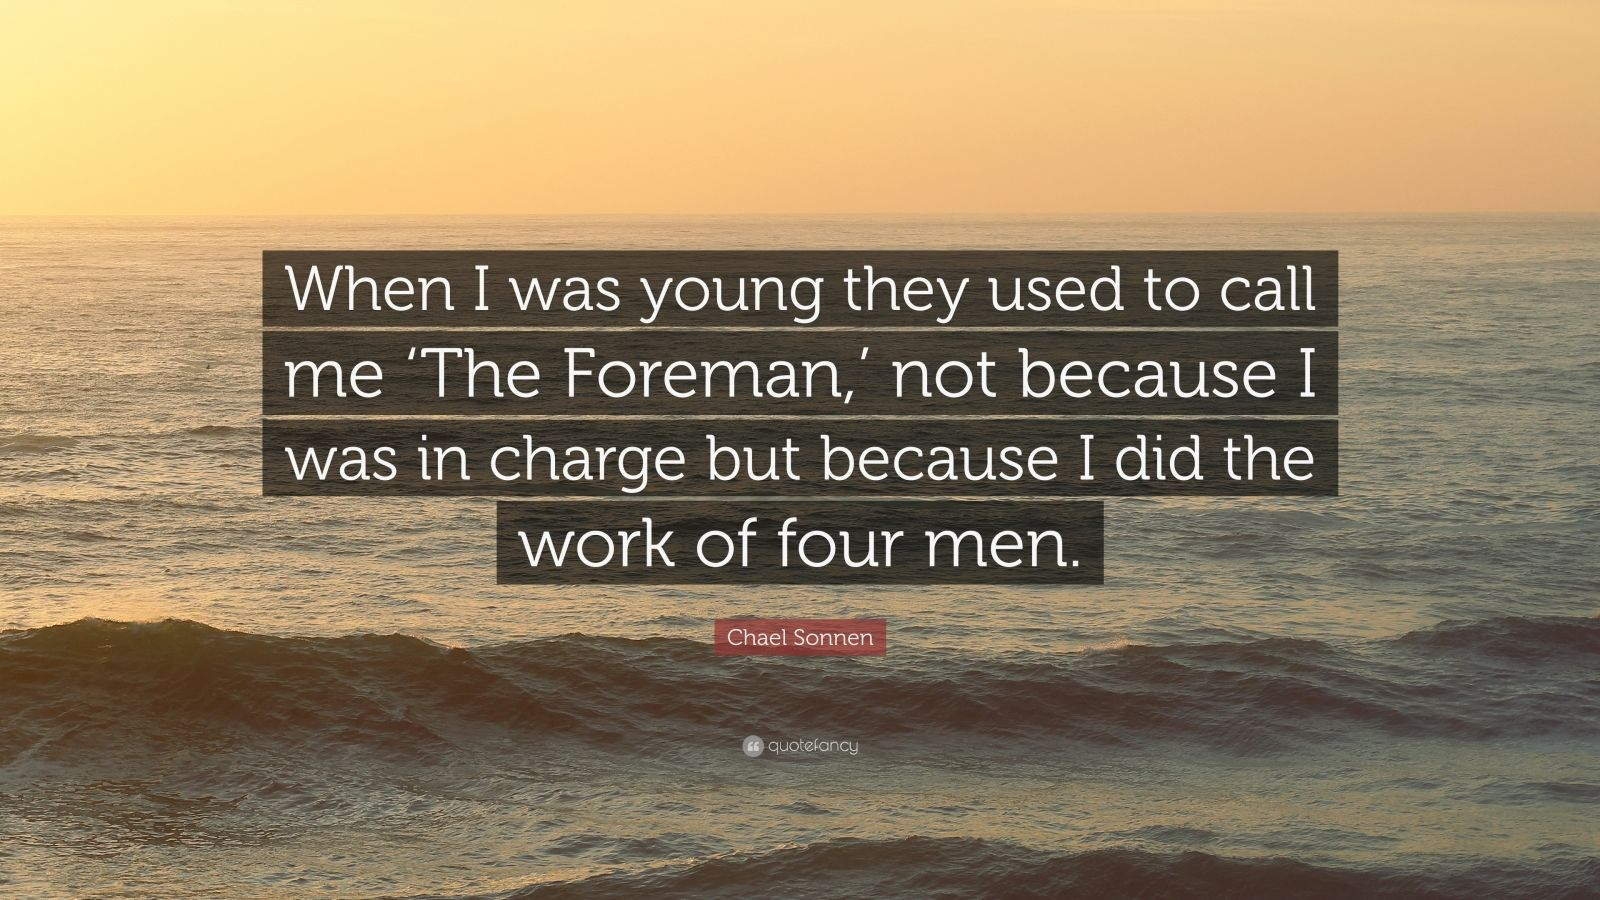 """Chael Sonnen Quote: """"When I was young they used to call me 'The Foreman,' not because I was in charge but because I did the work of four men."""""""